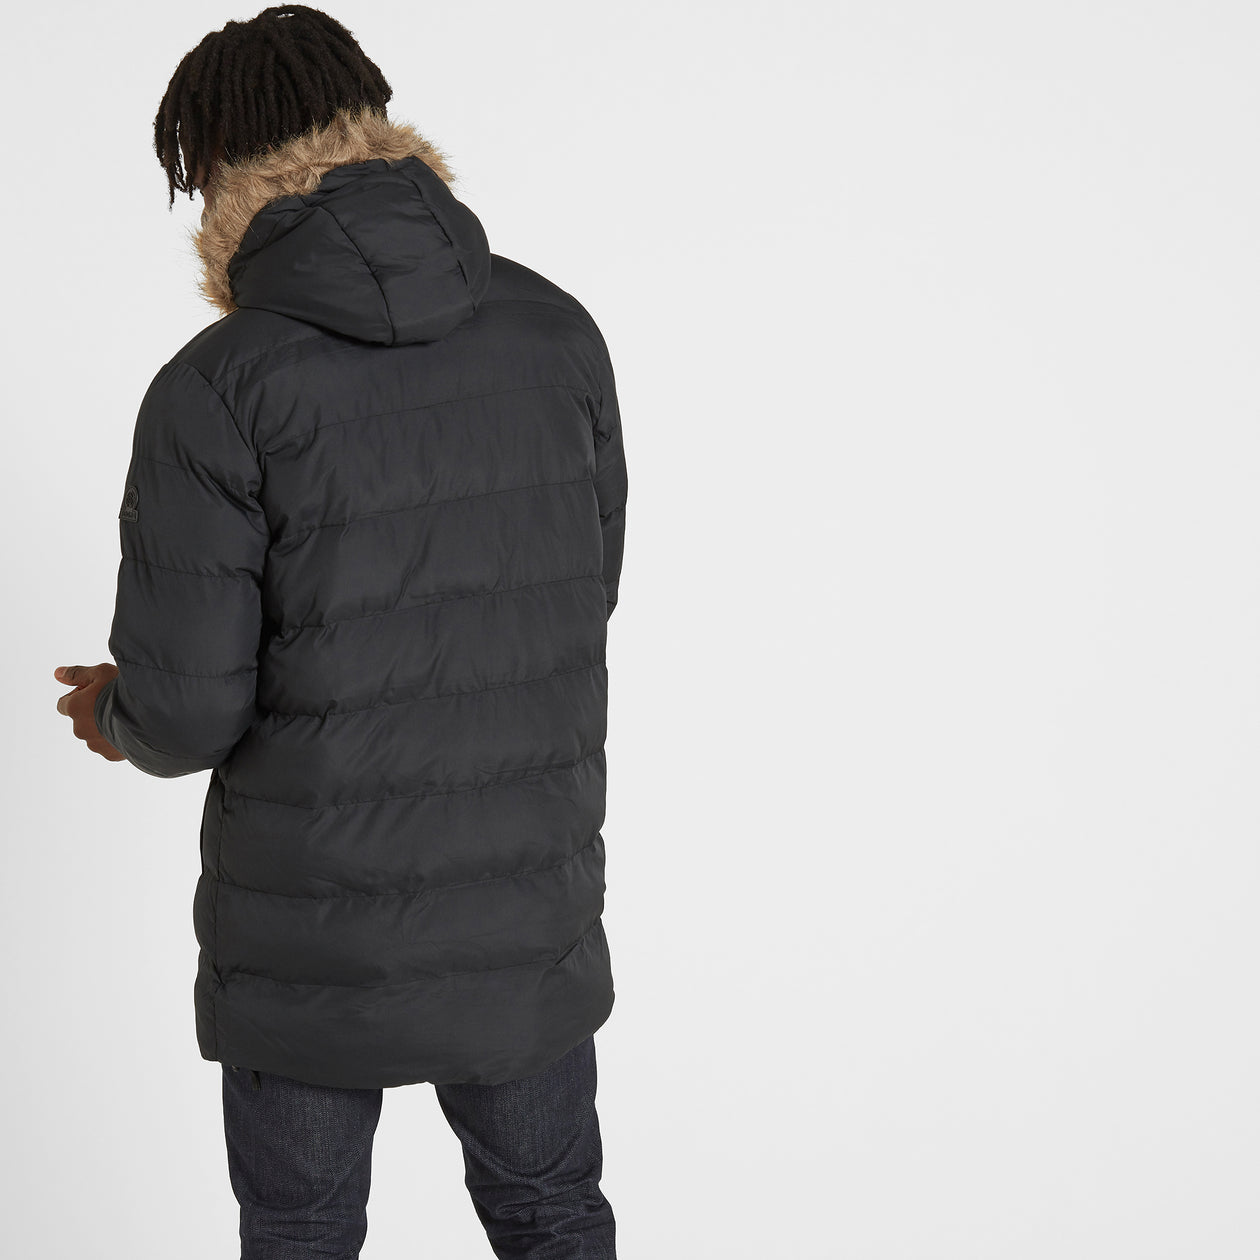 Caliber Mens Long Insulated Jacket - Black image 4